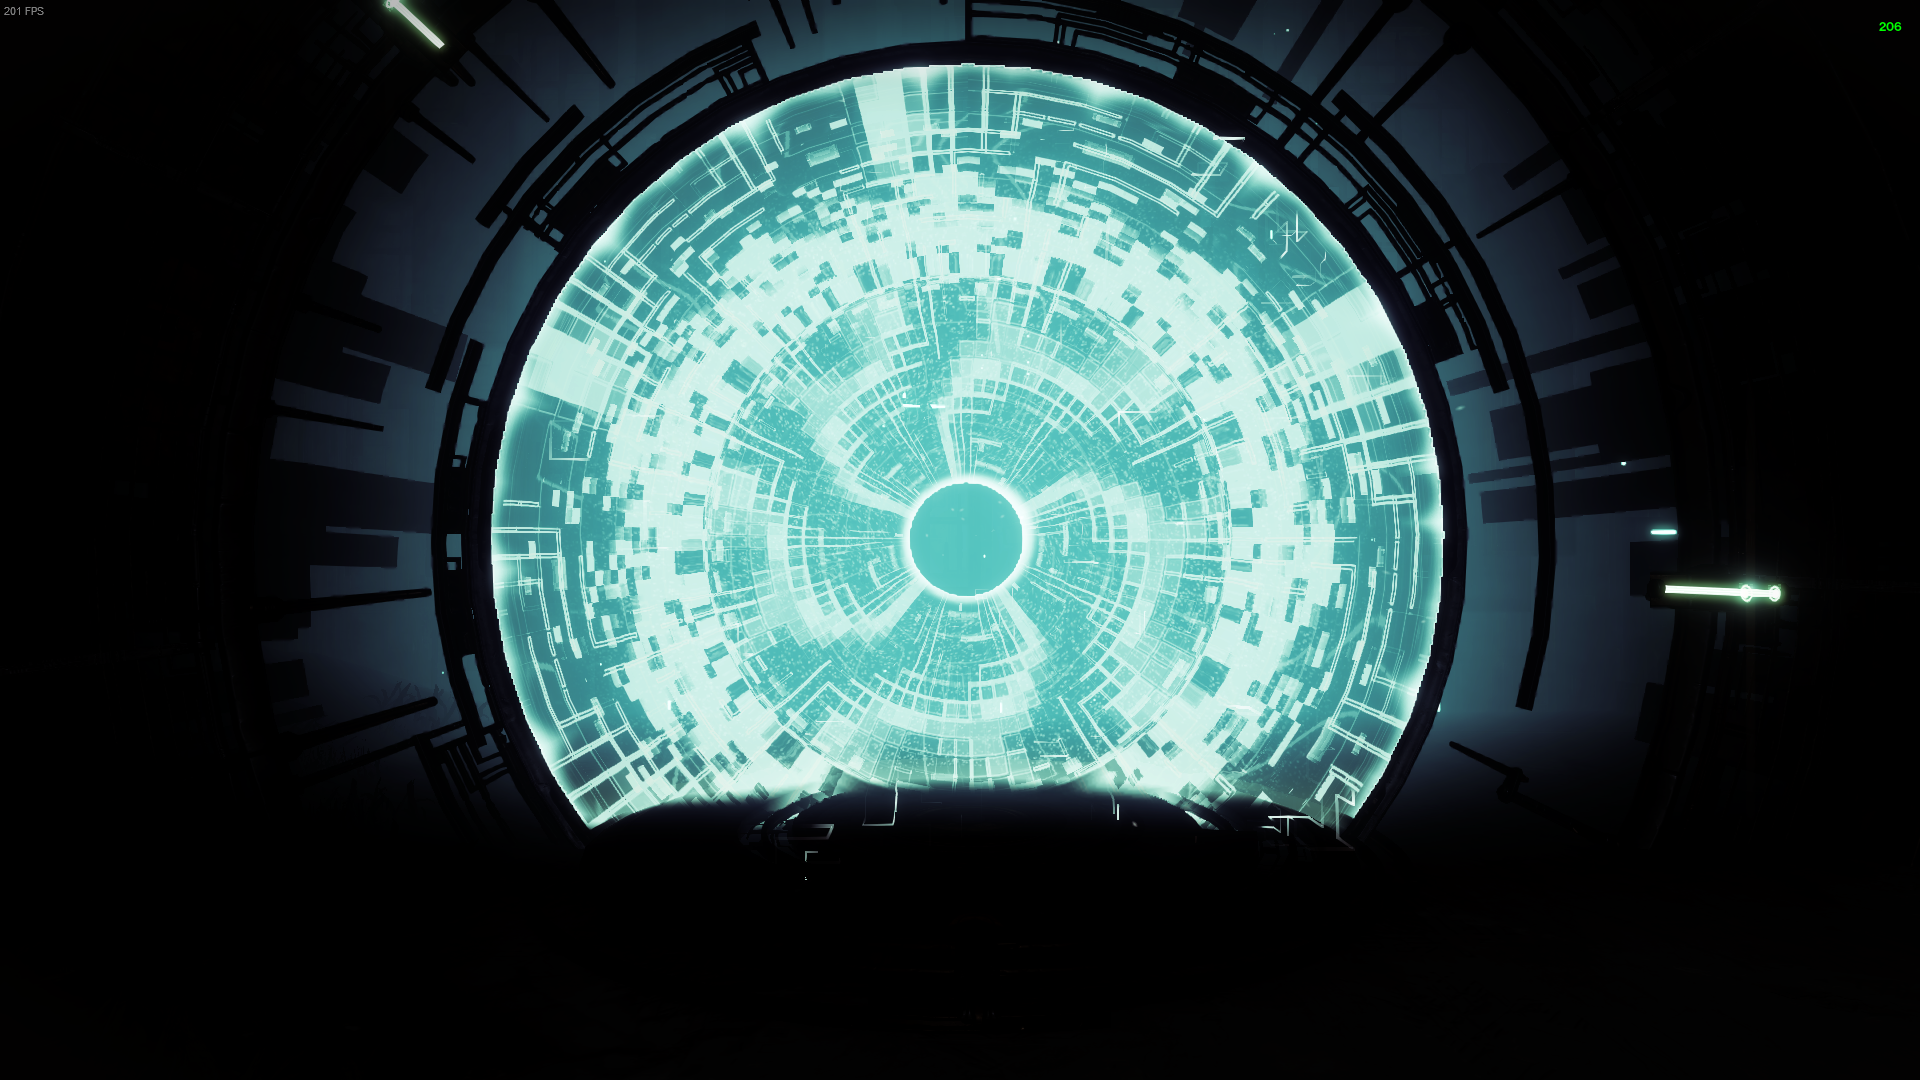 A Vex portal stands contrasted against a completely black background. The subtle glow highlighting the machinery around it.